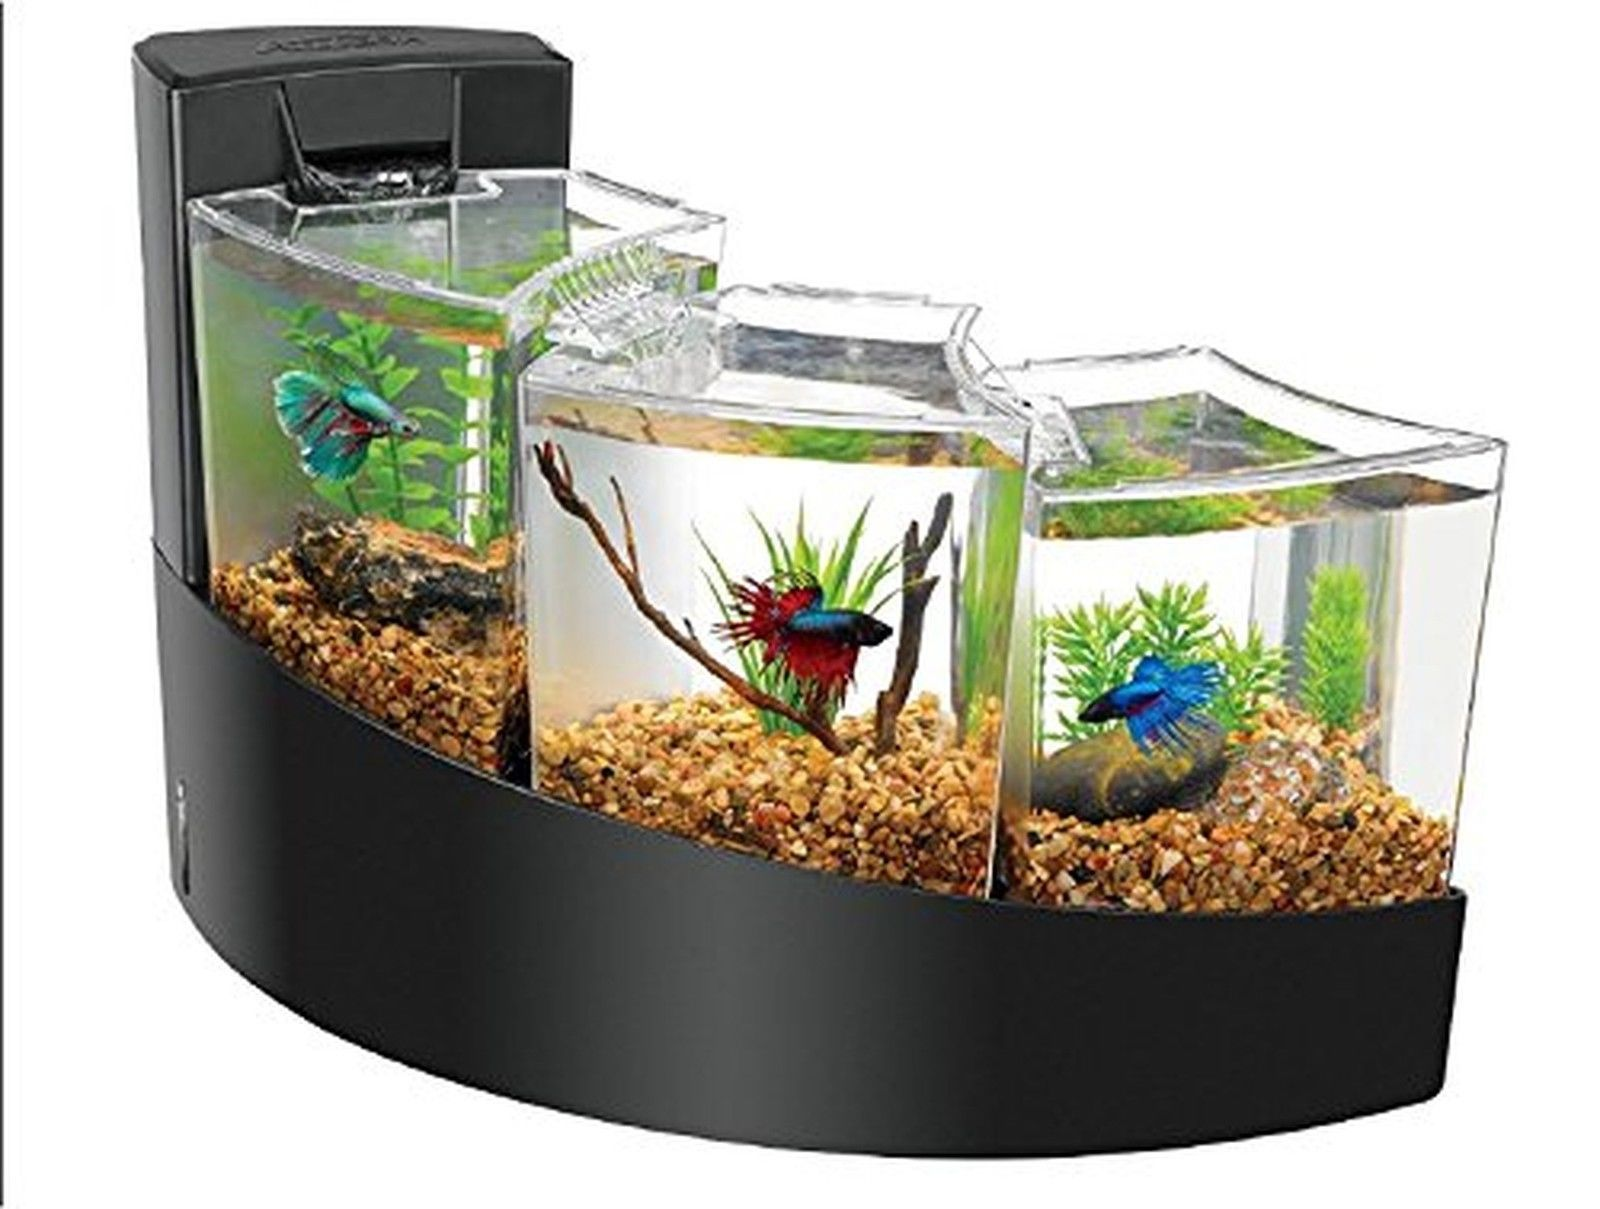 aqueon kit betta water falls mini aquarium fish tank black. Black Bedroom Furniture Sets. Home Design Ideas